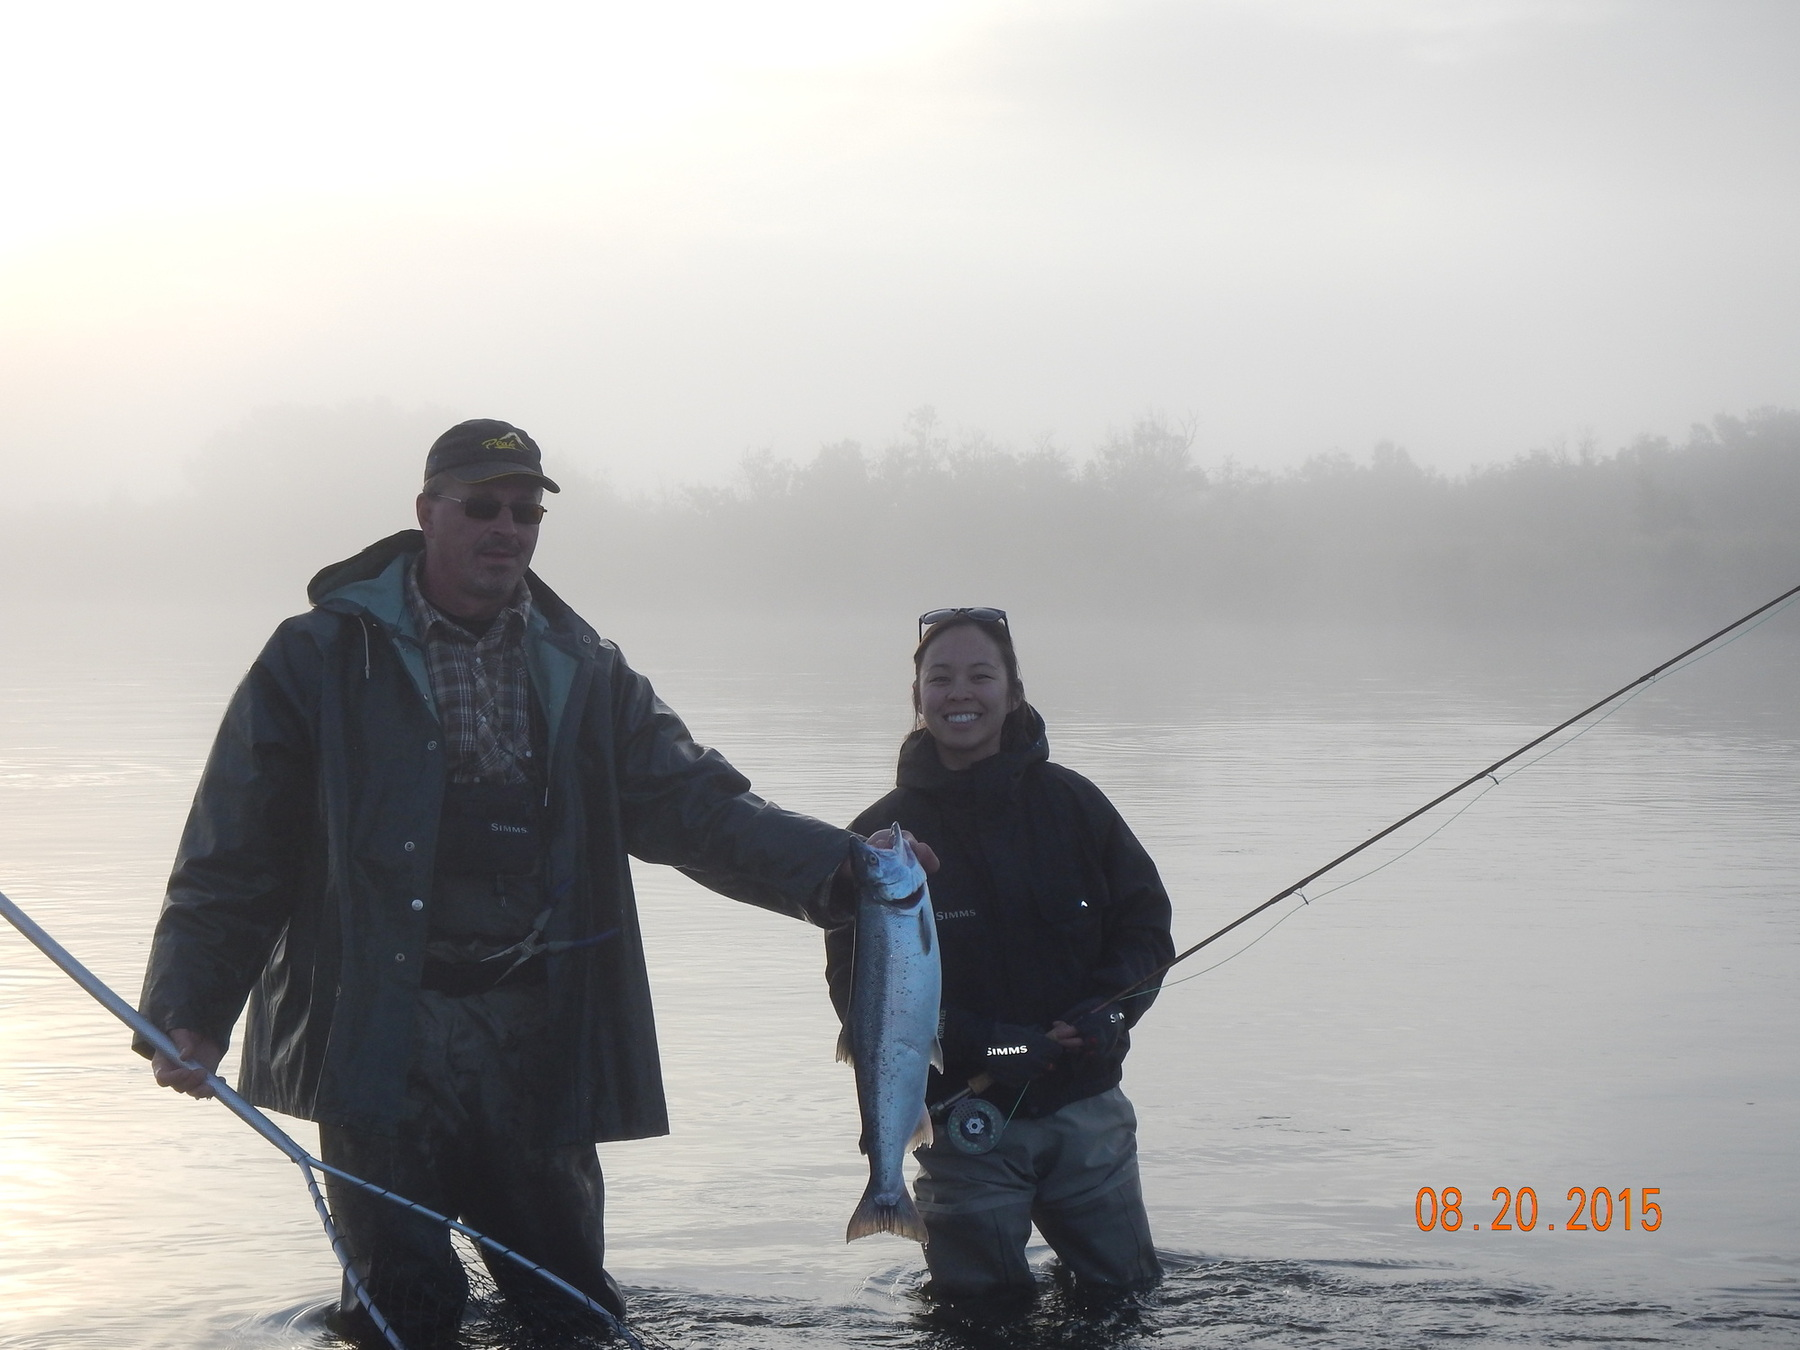 guide & client in river with fog